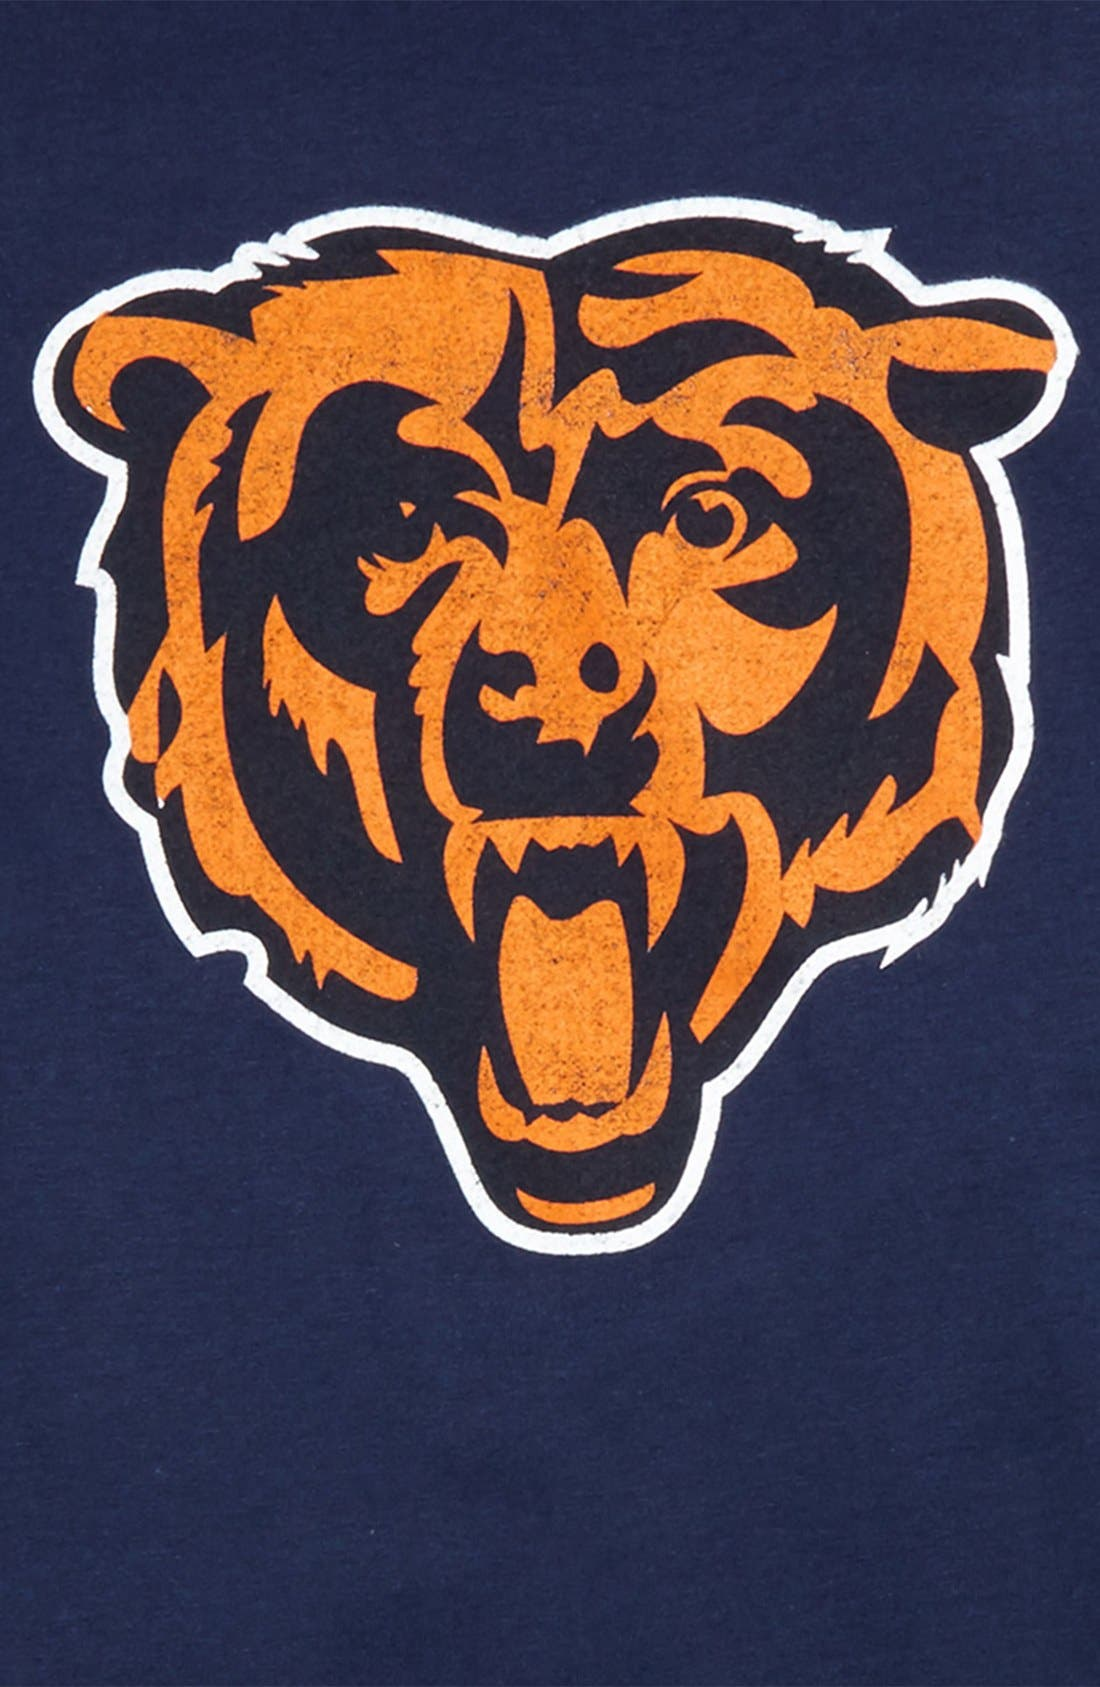 'NFL - Chicago Bears' Distressed Logo Graphic T-Shirt,                             Alternate thumbnail 2, color,                             Bears